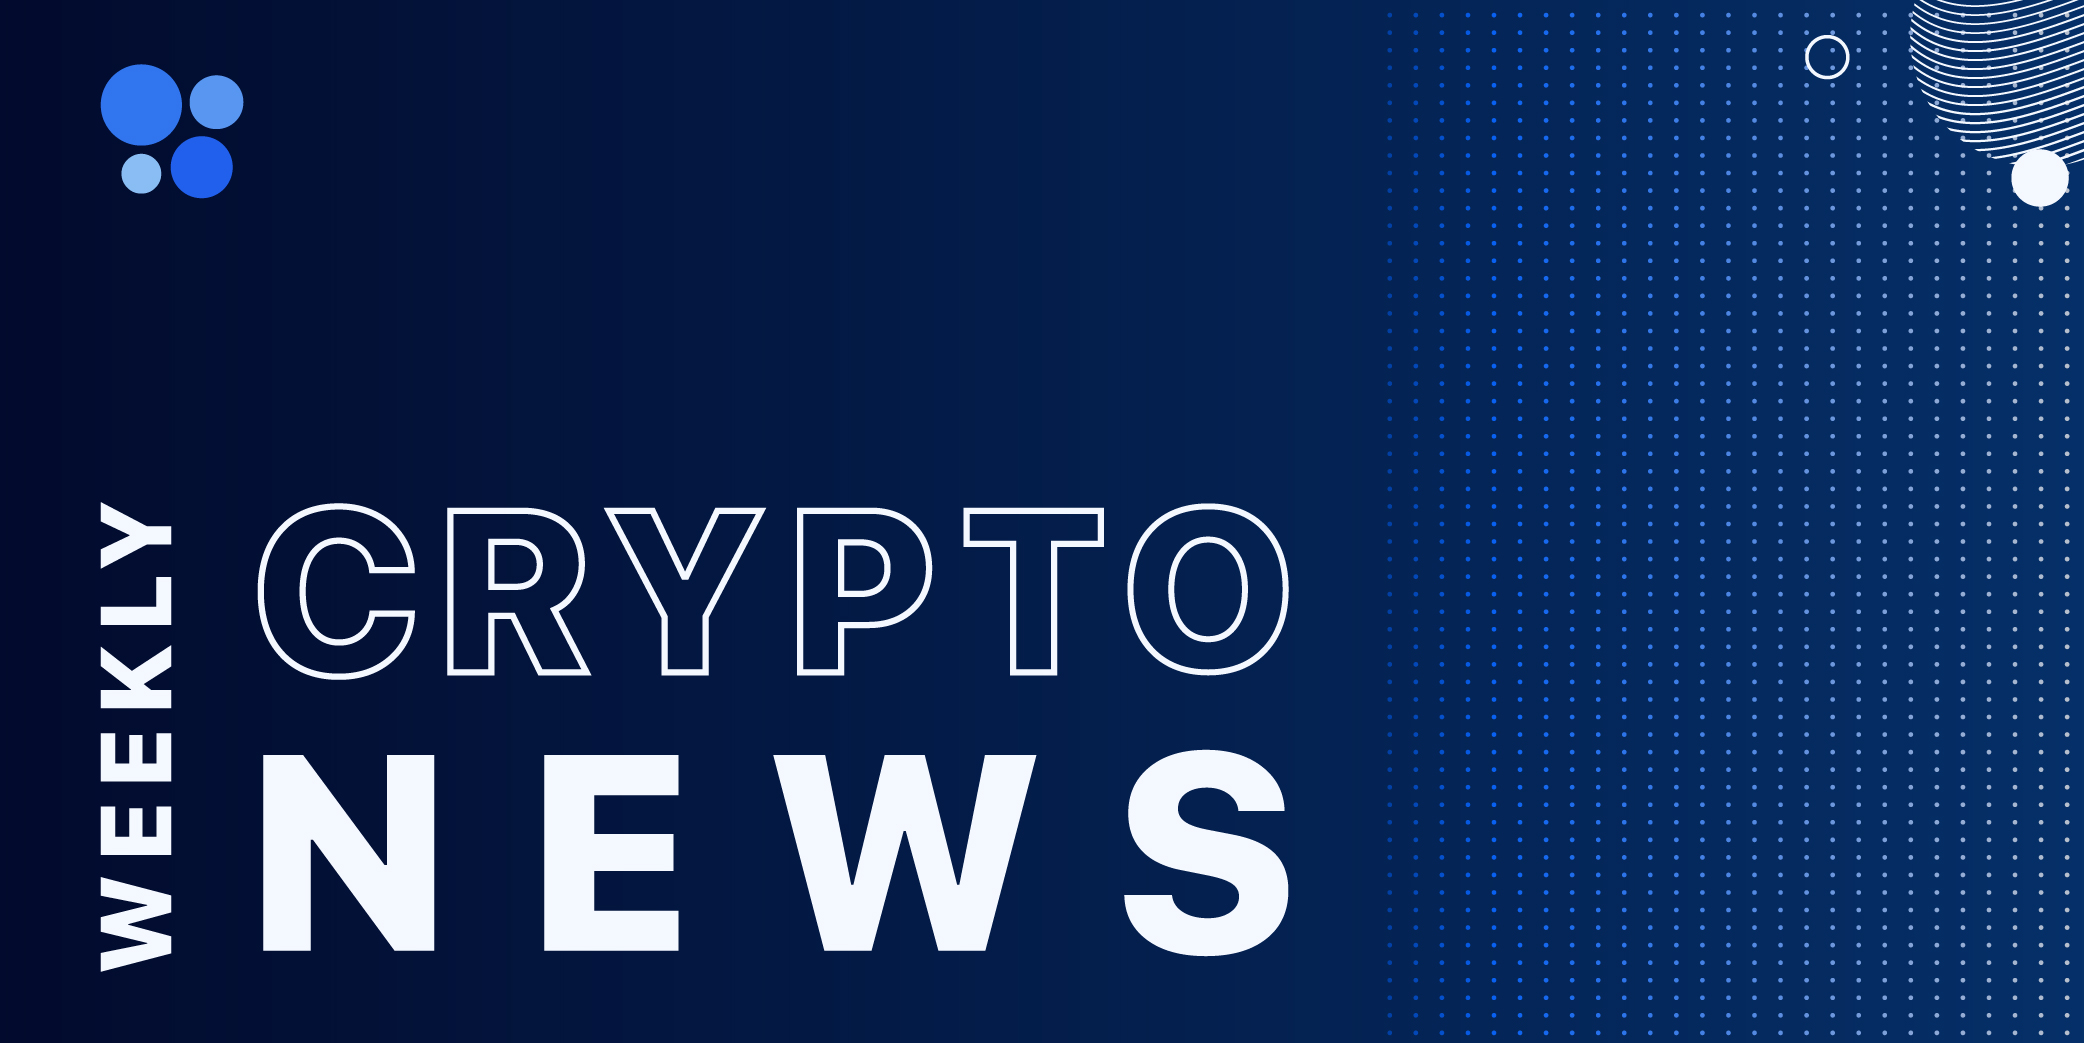 May 30th crypto news roundup